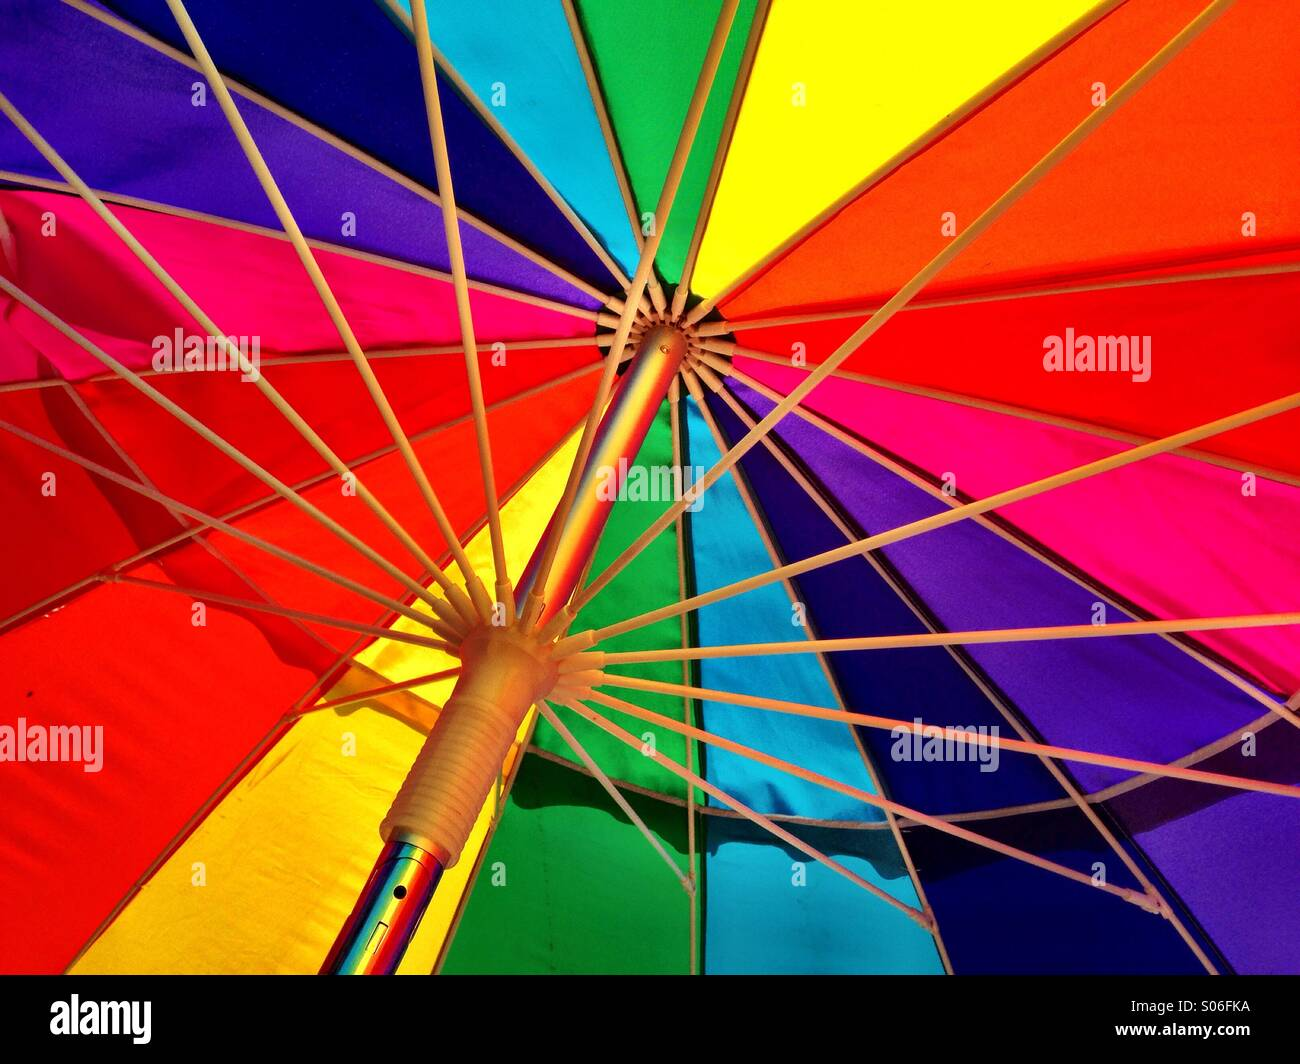 A rainbow-colored umbrella glows in the sun. - Stock Image